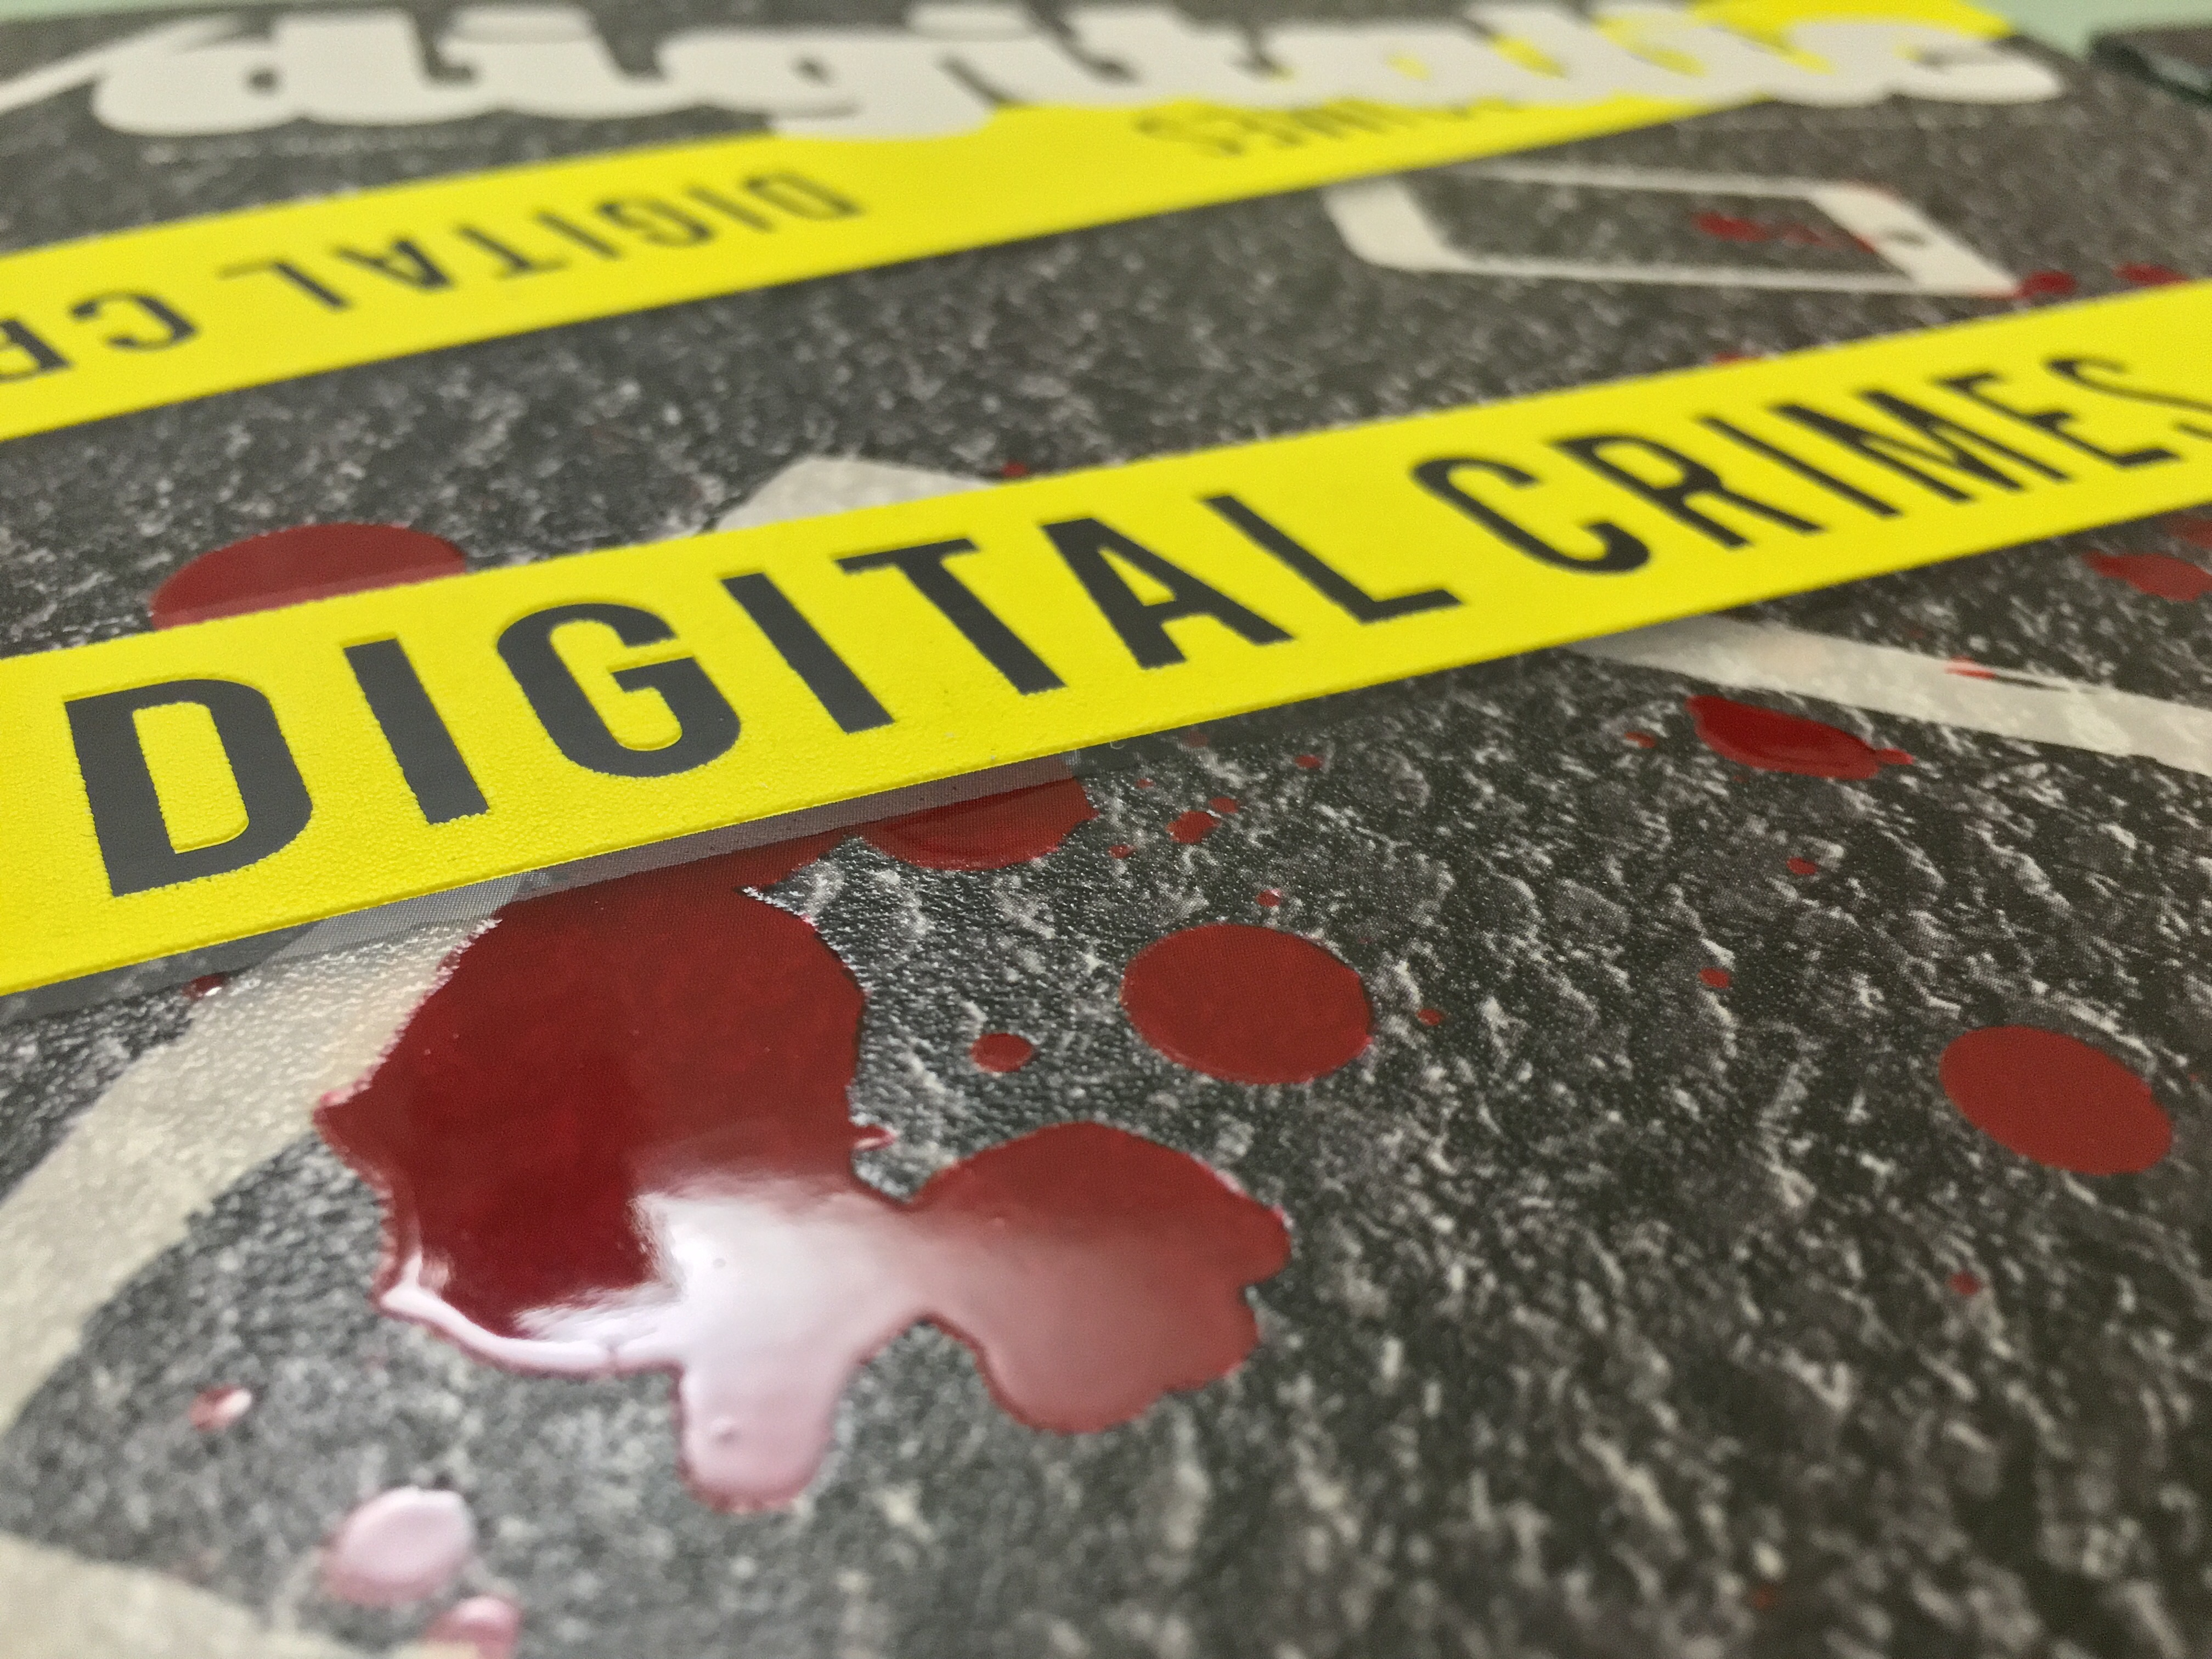 Digitalic n. 47 – Digital Crimes